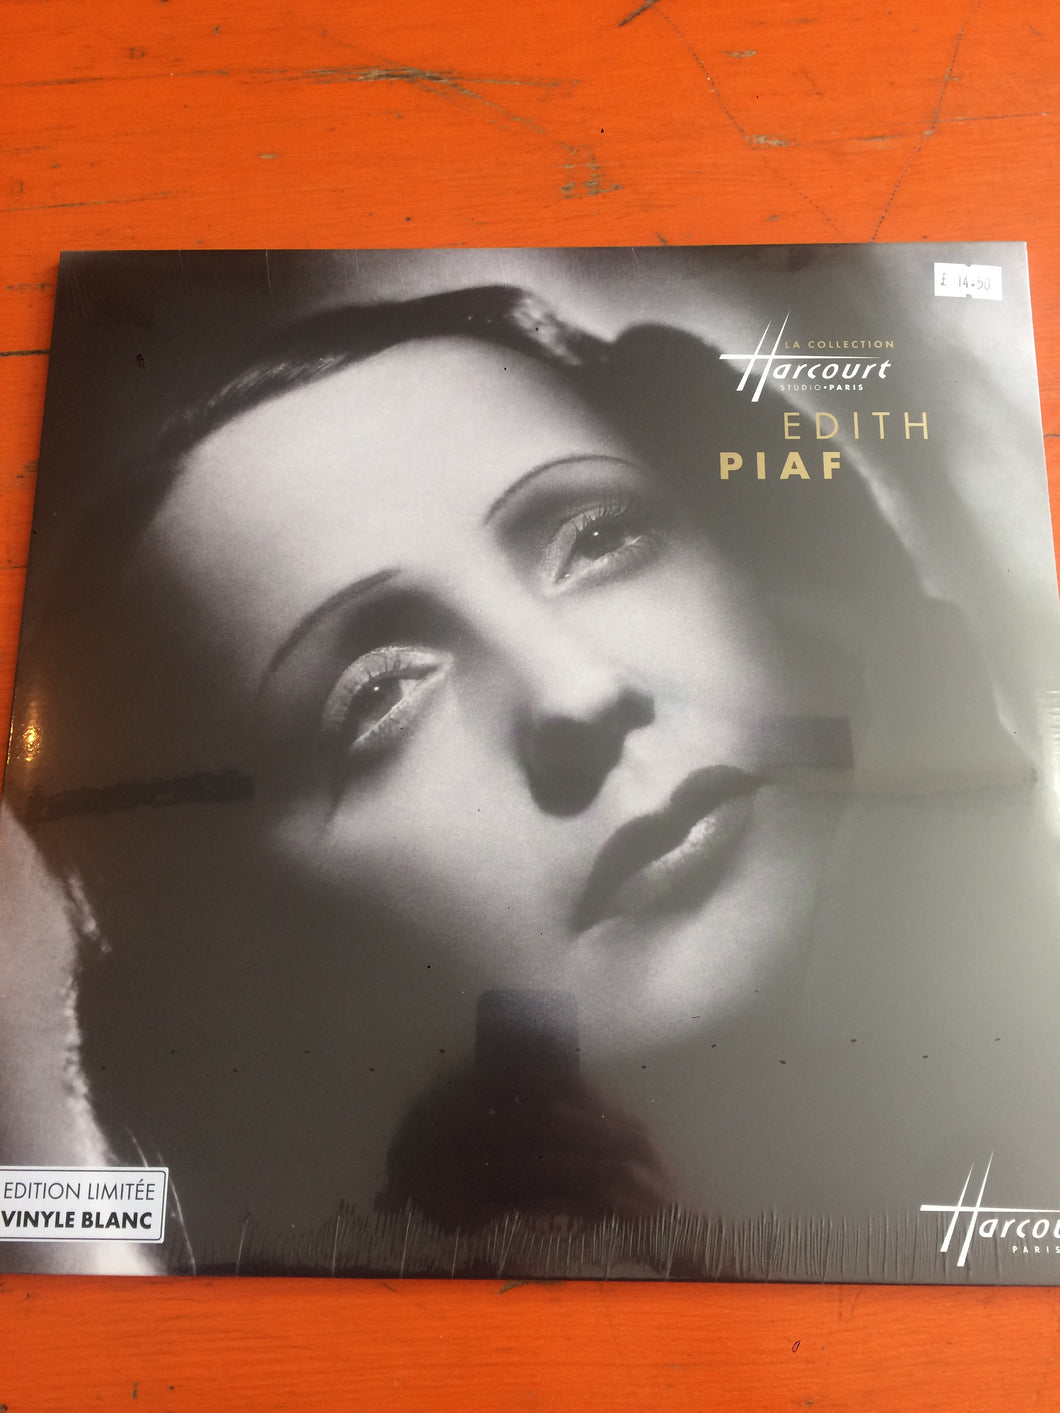 Edith Piaf - Harcourt Collection